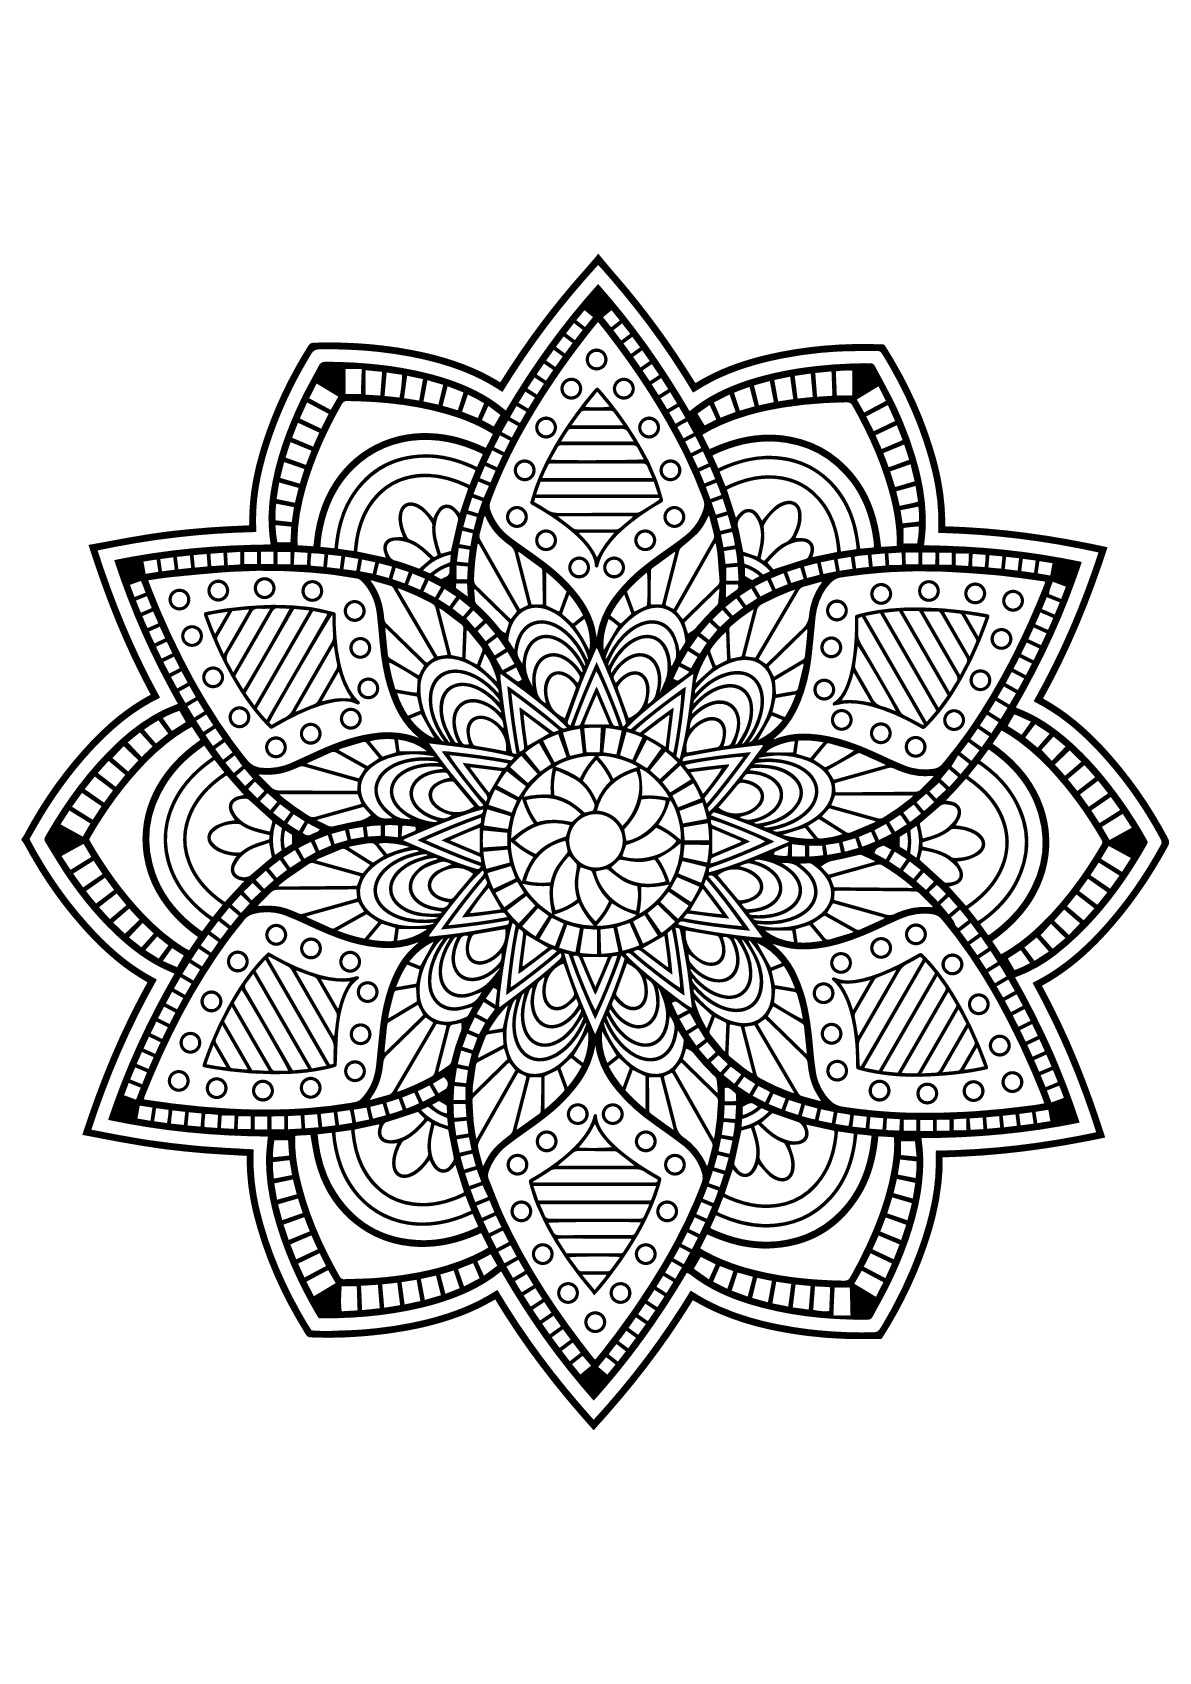 mandala coloring pages for adults mandala from free coloring books for adults 24 mandalas pages mandala coloring adults for